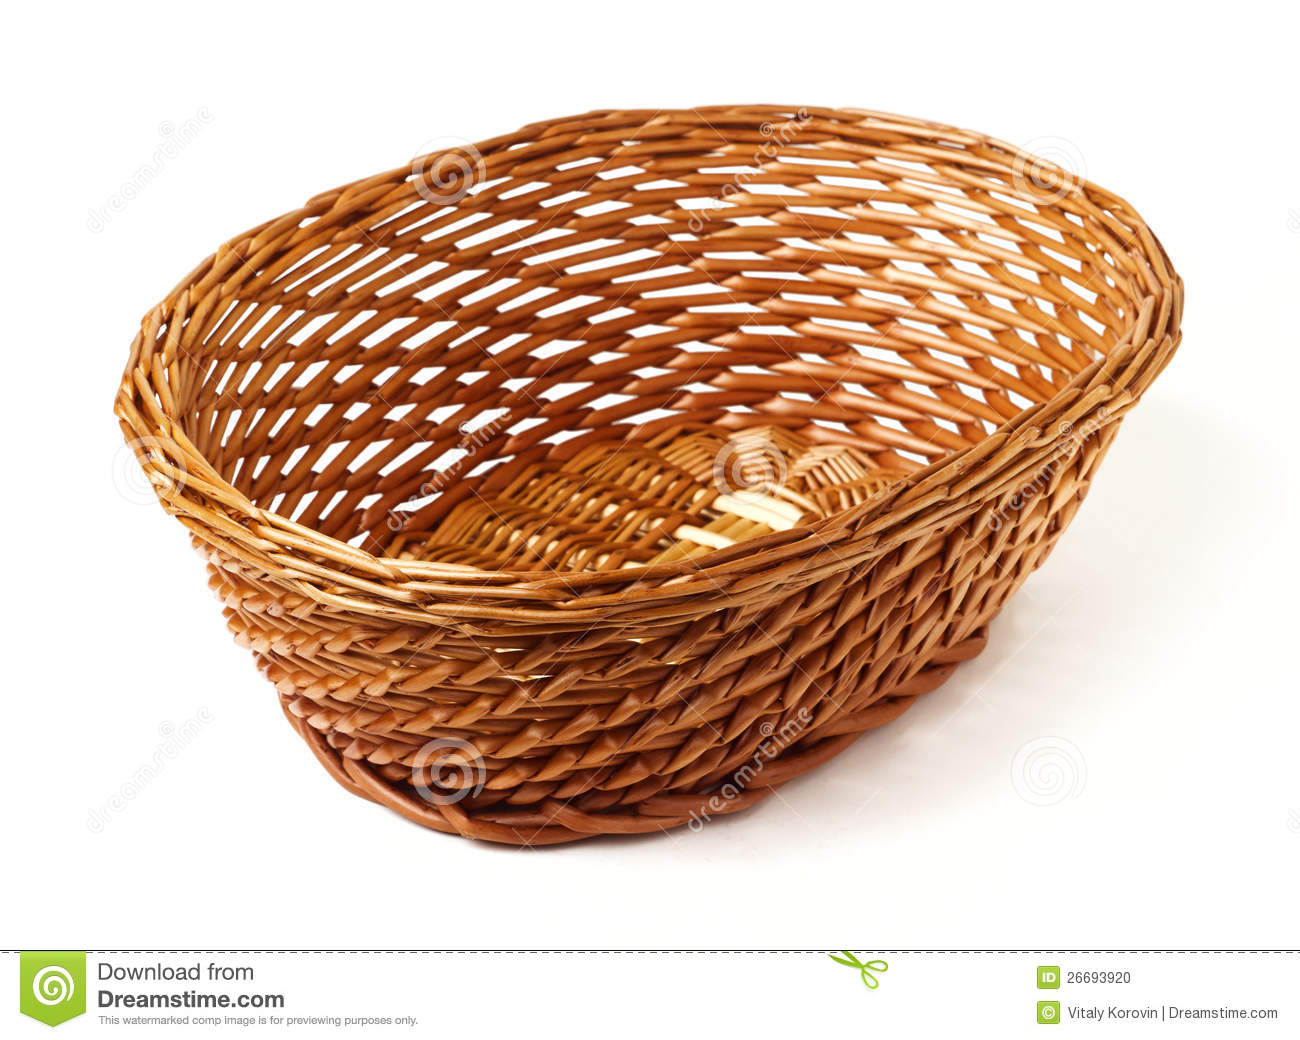 Oval Woven Reed Basket Stock Photo Image 26693920